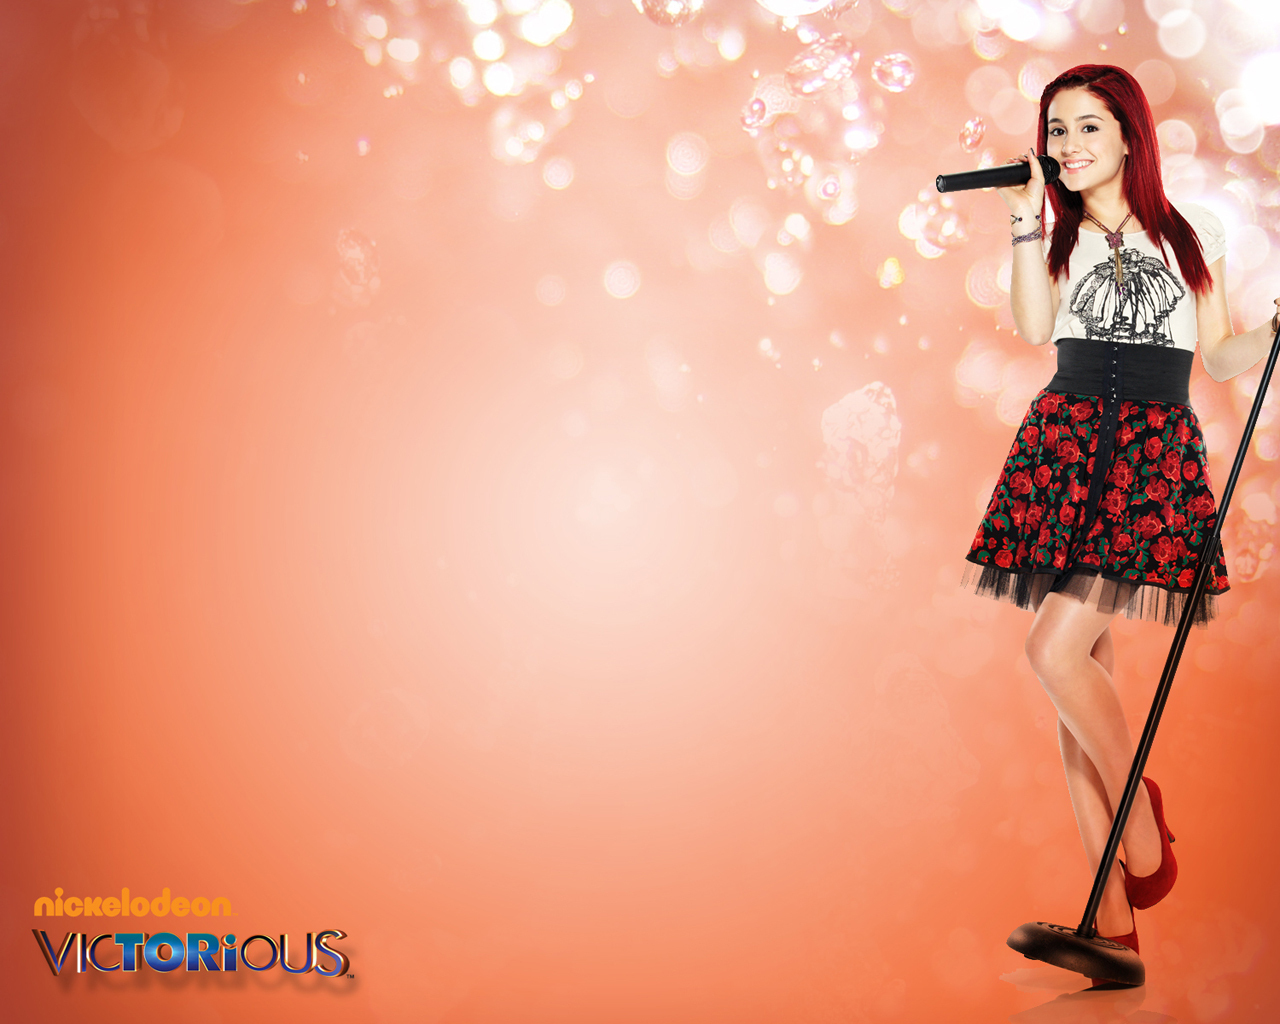 Cat Valentine   Victorious Wallpaper 20031986 1280x1024